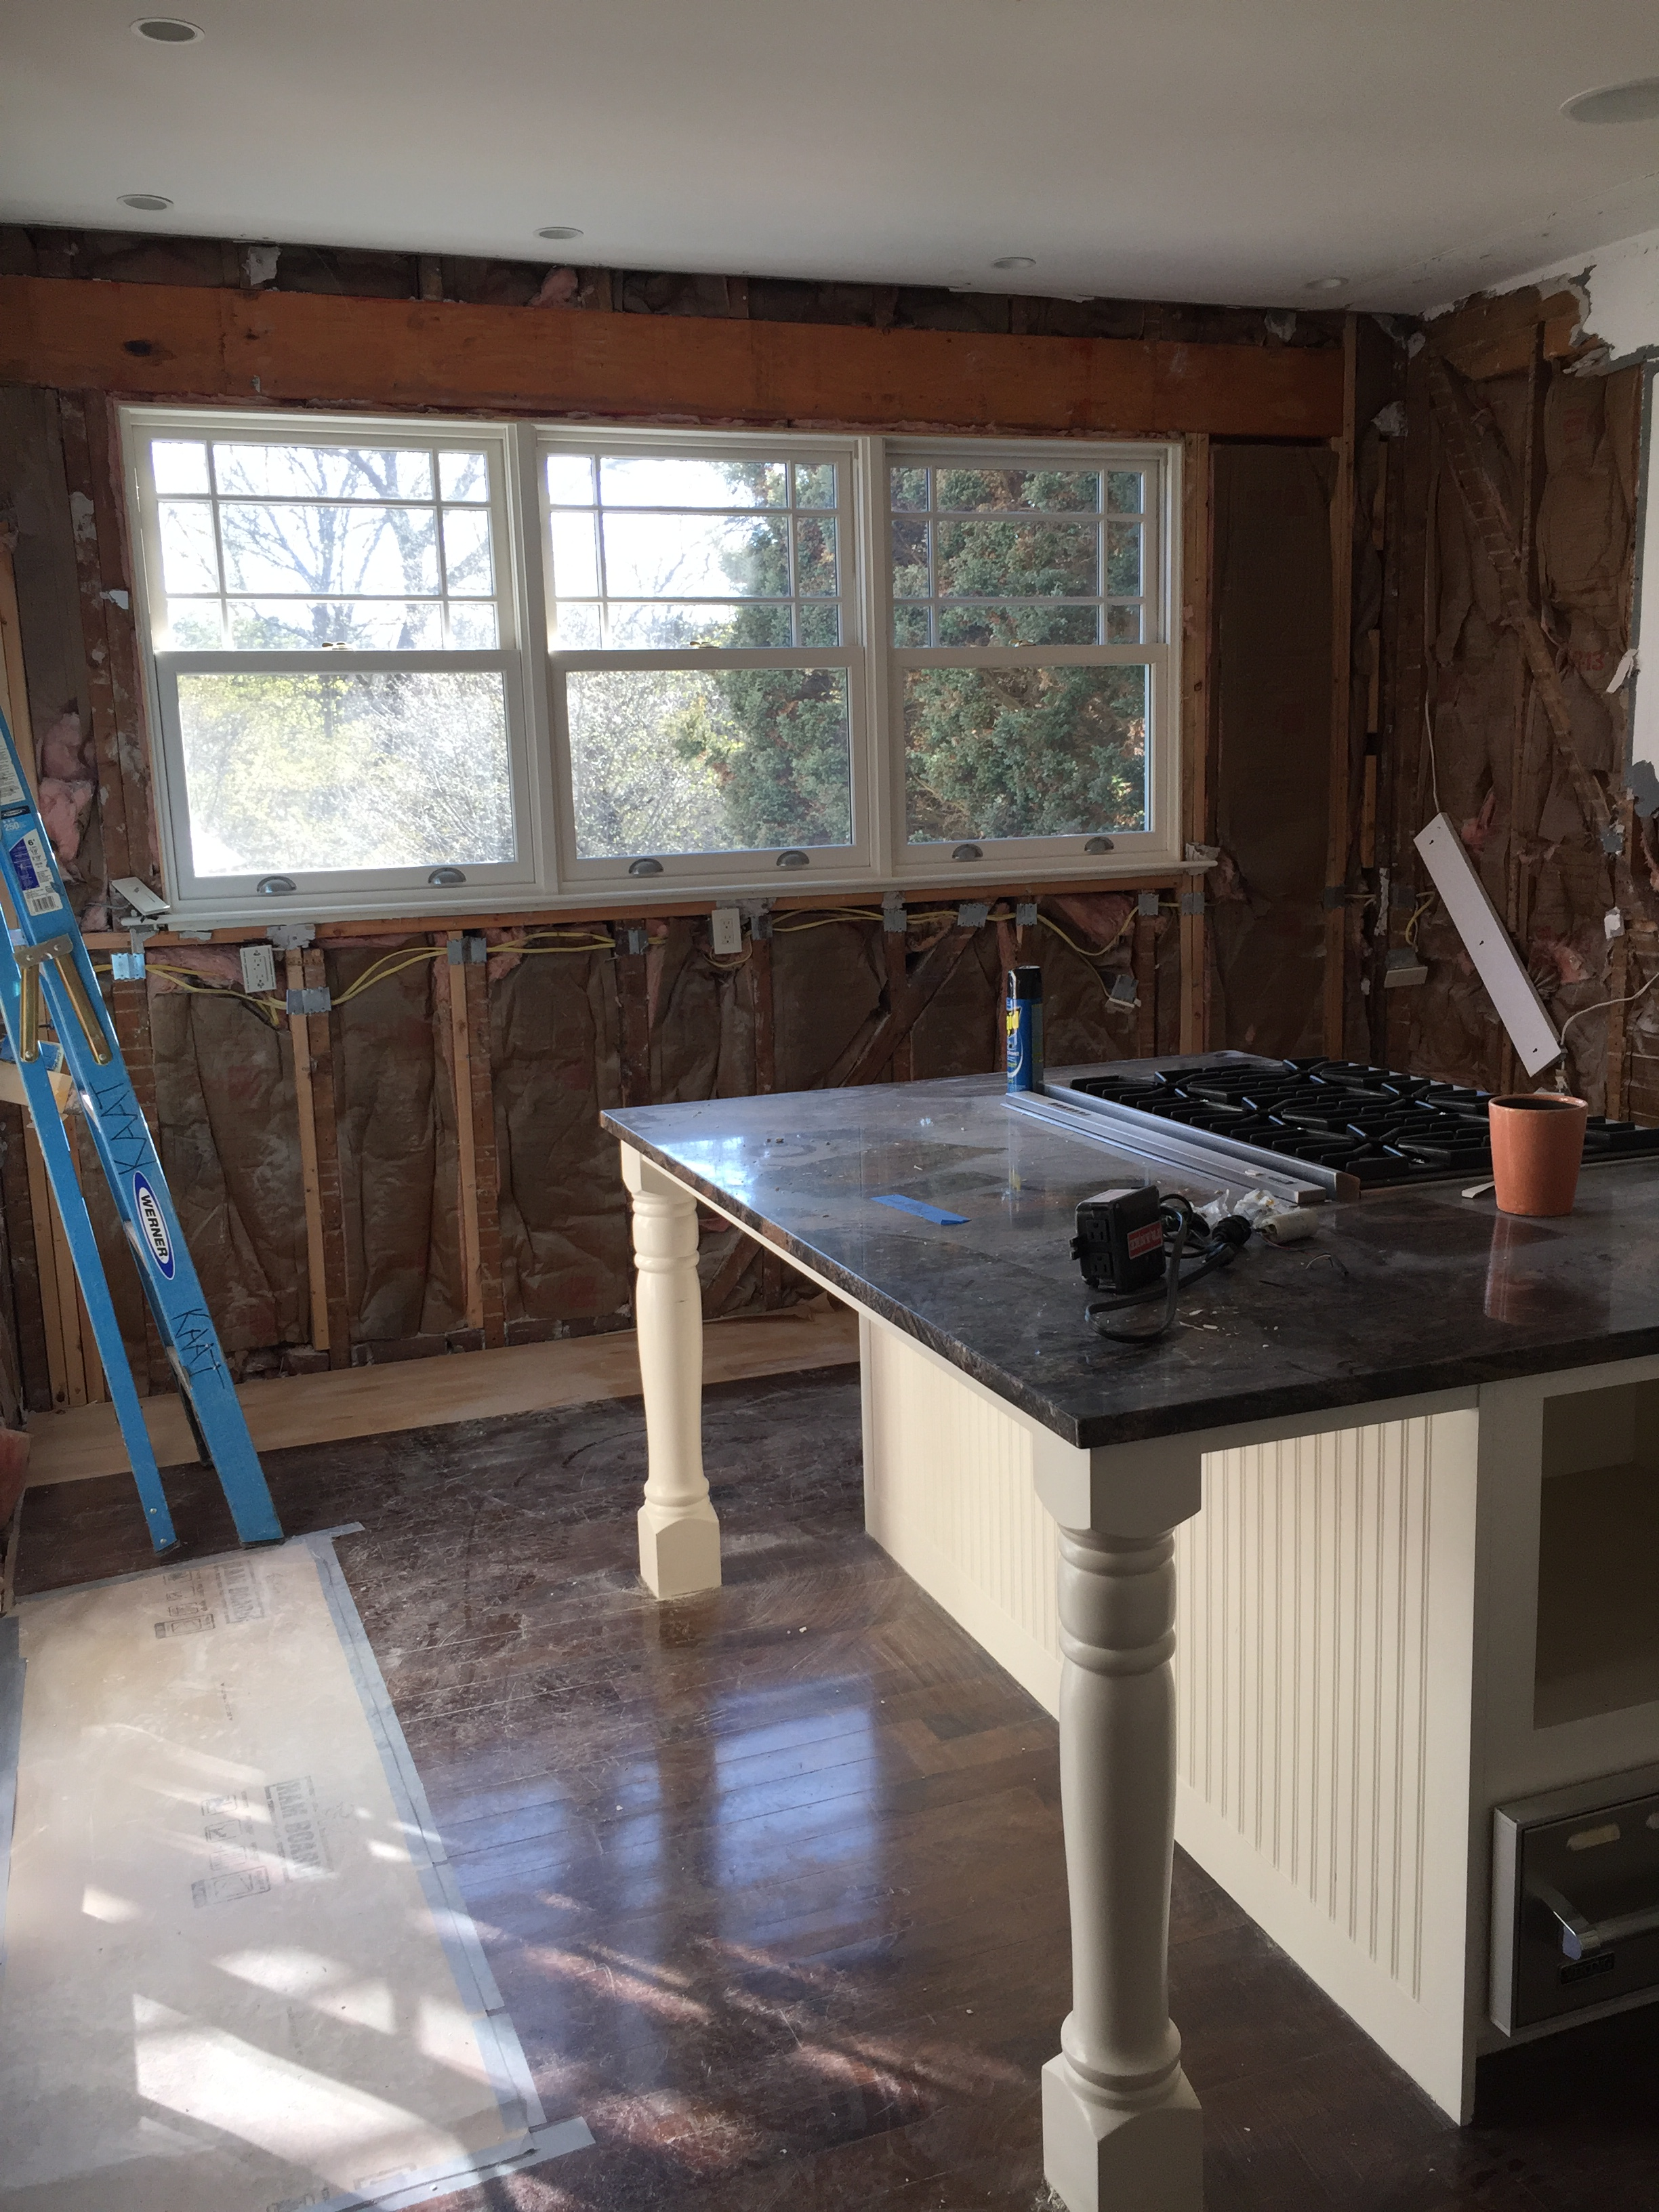 Day 57: Project 1896 (Our Home Renovation) – Interiors for Families